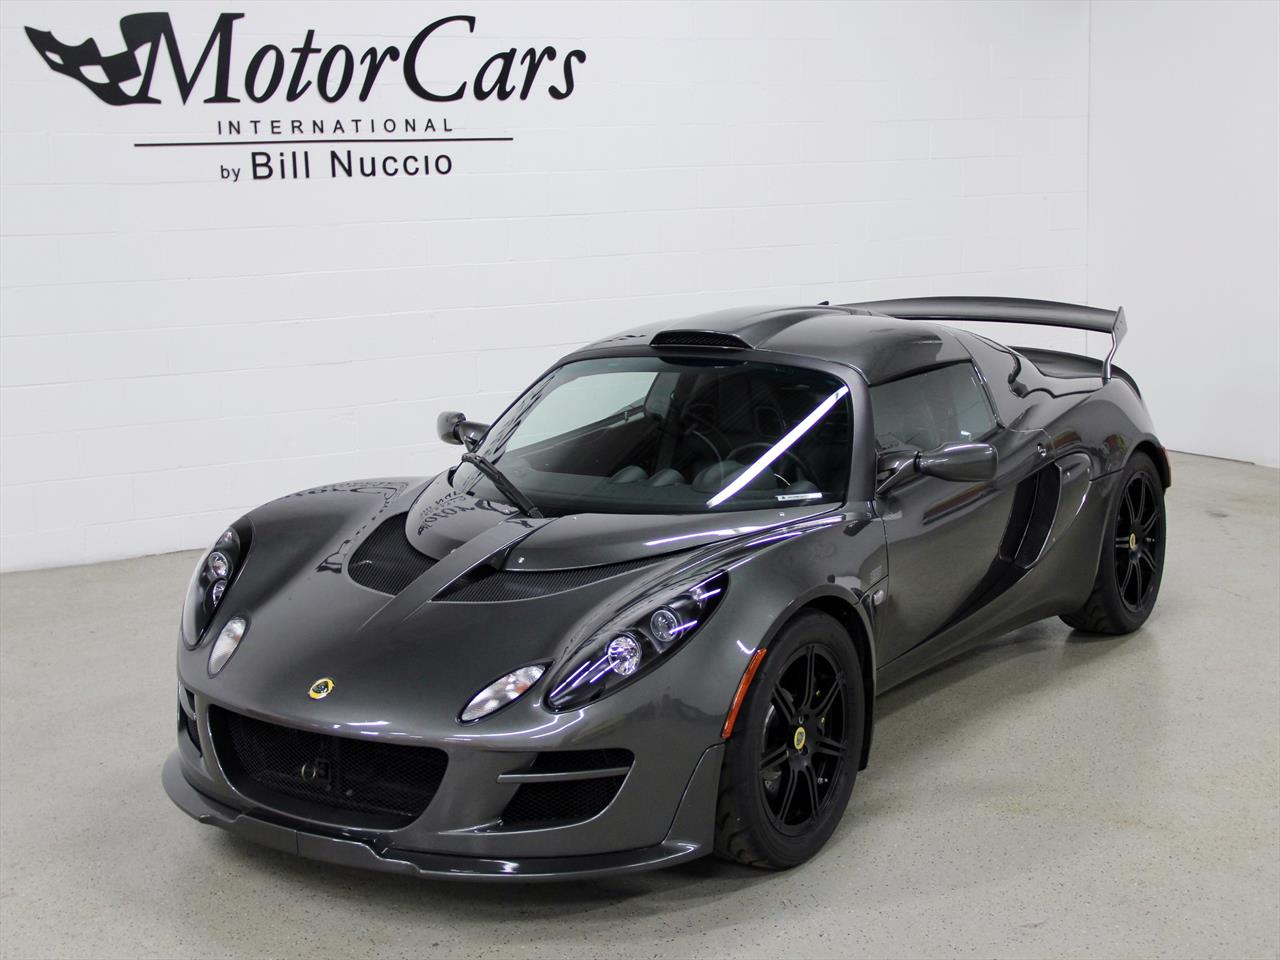 2010 Lotus Exige 240 Supercharged